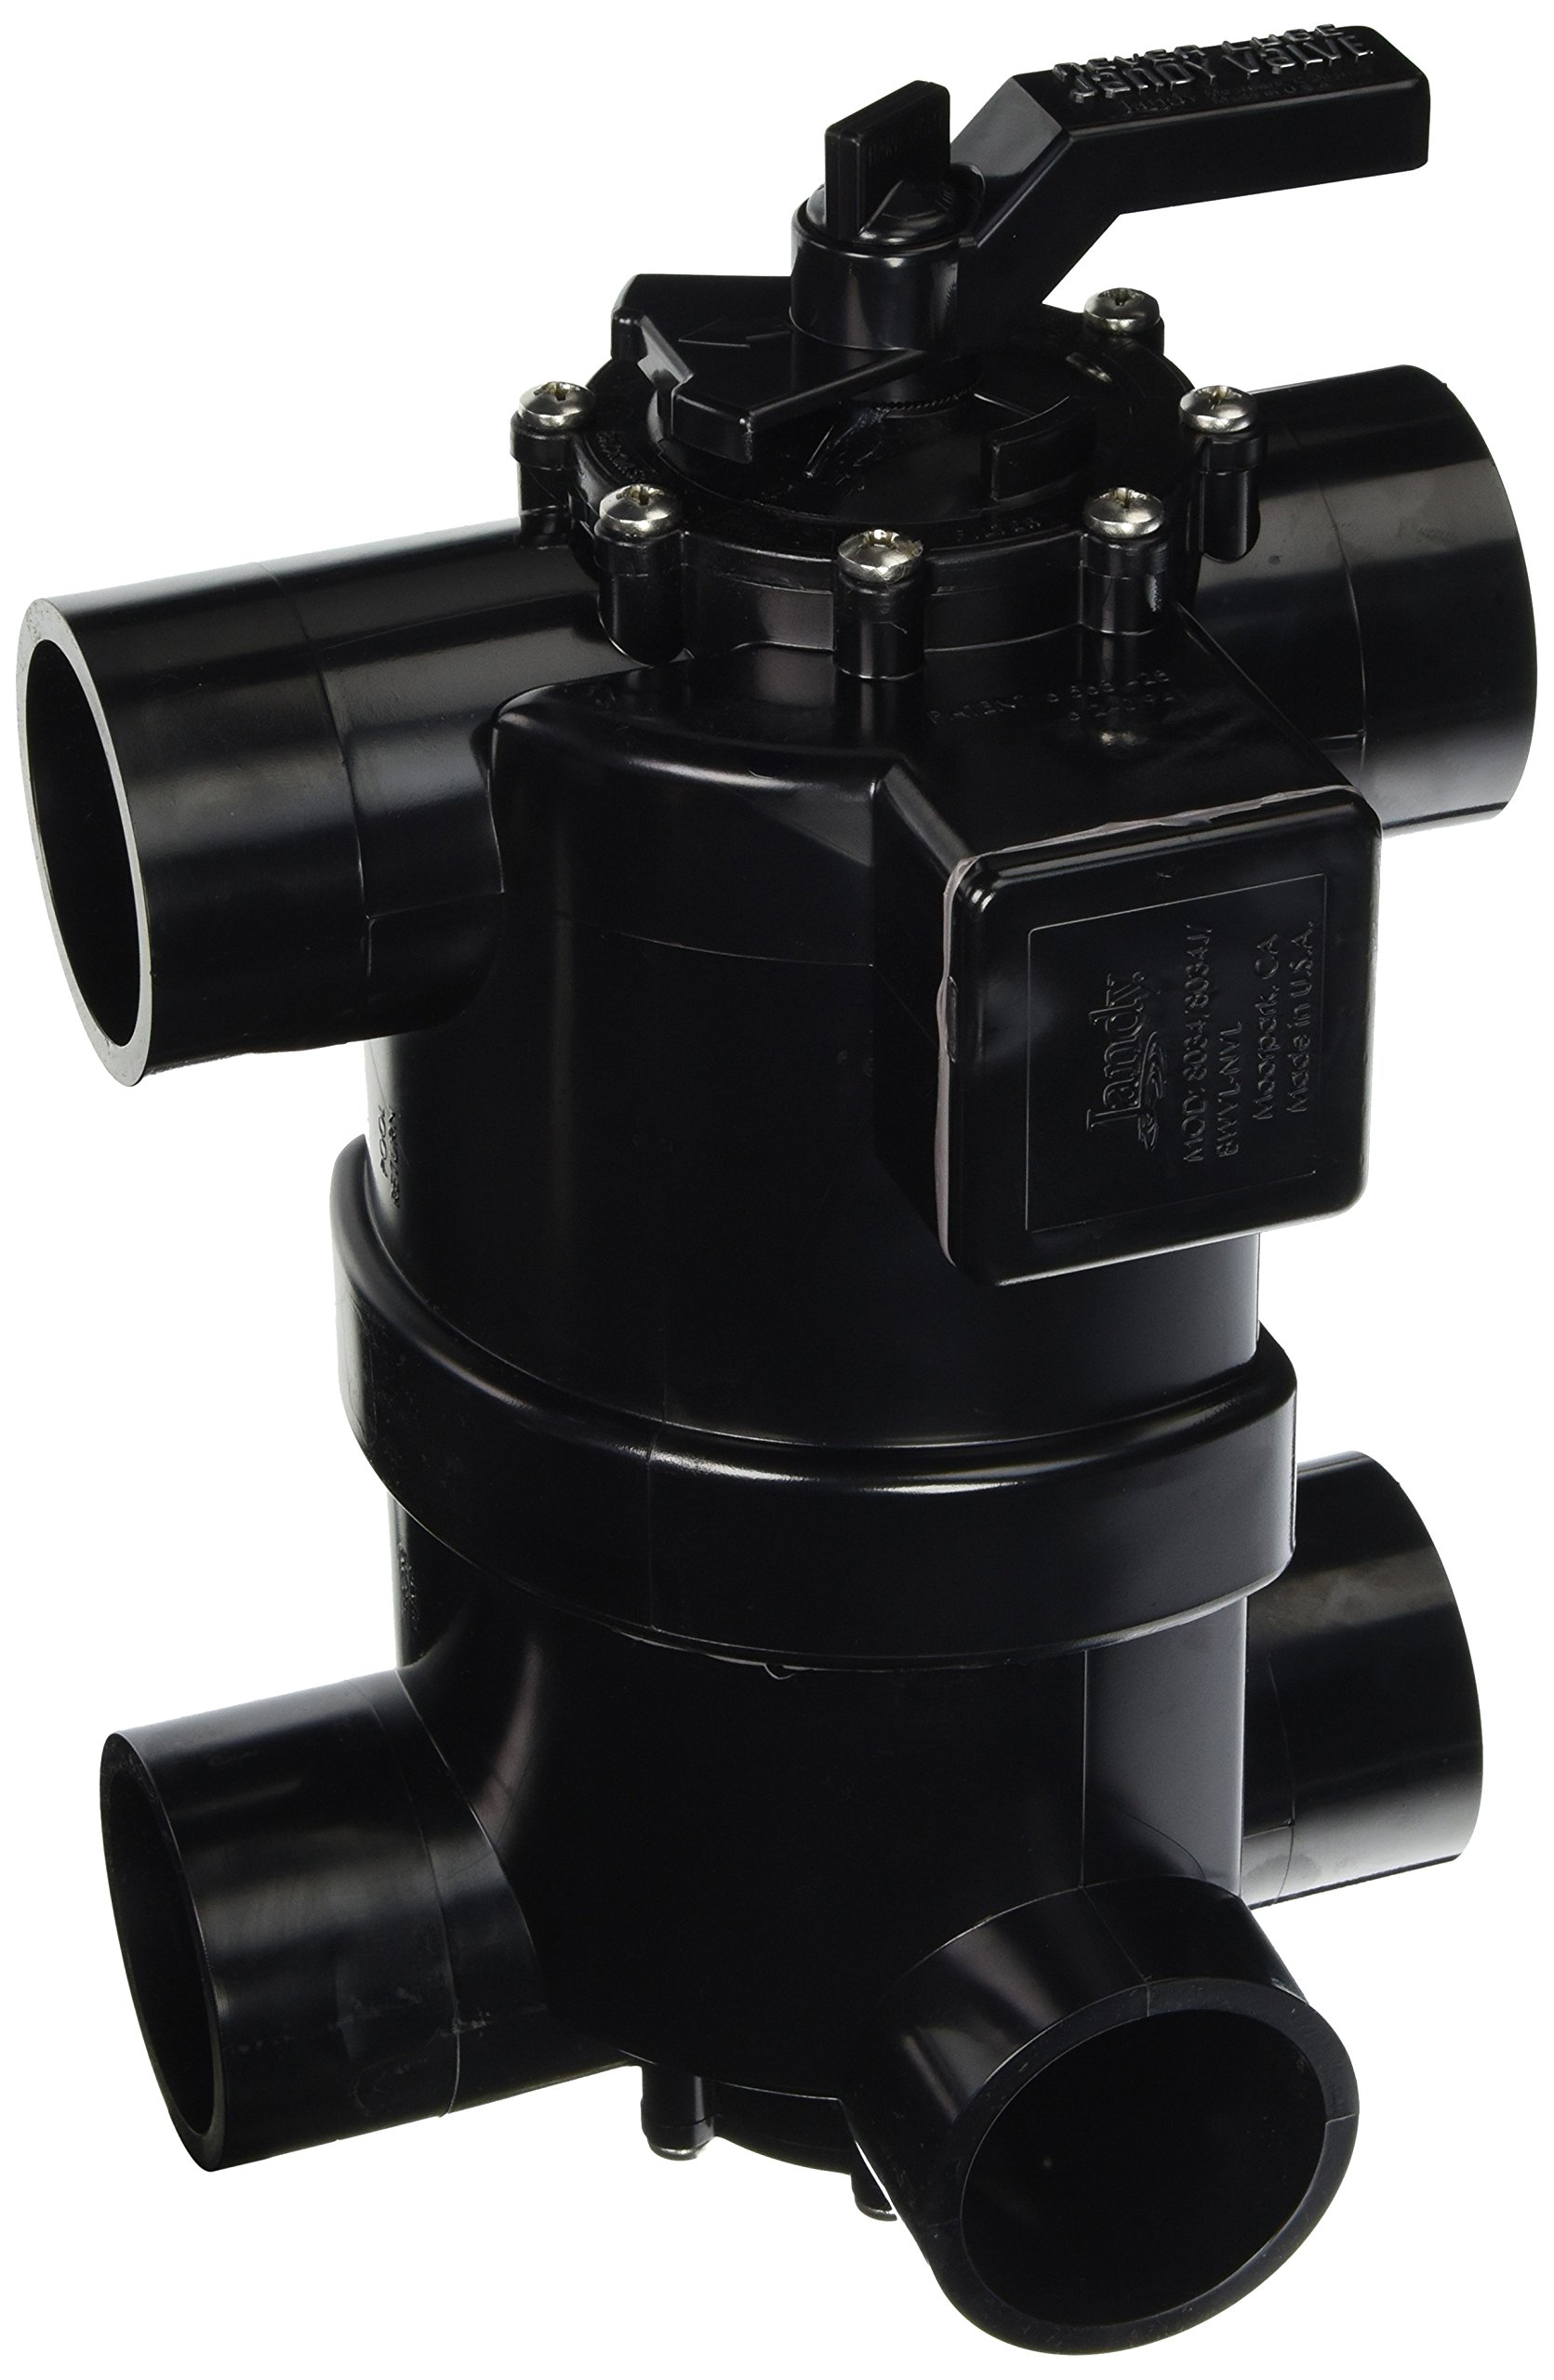 Zodiac 8034 2-in-1 Backwash Valve with Never Lube Technology by Zodiac